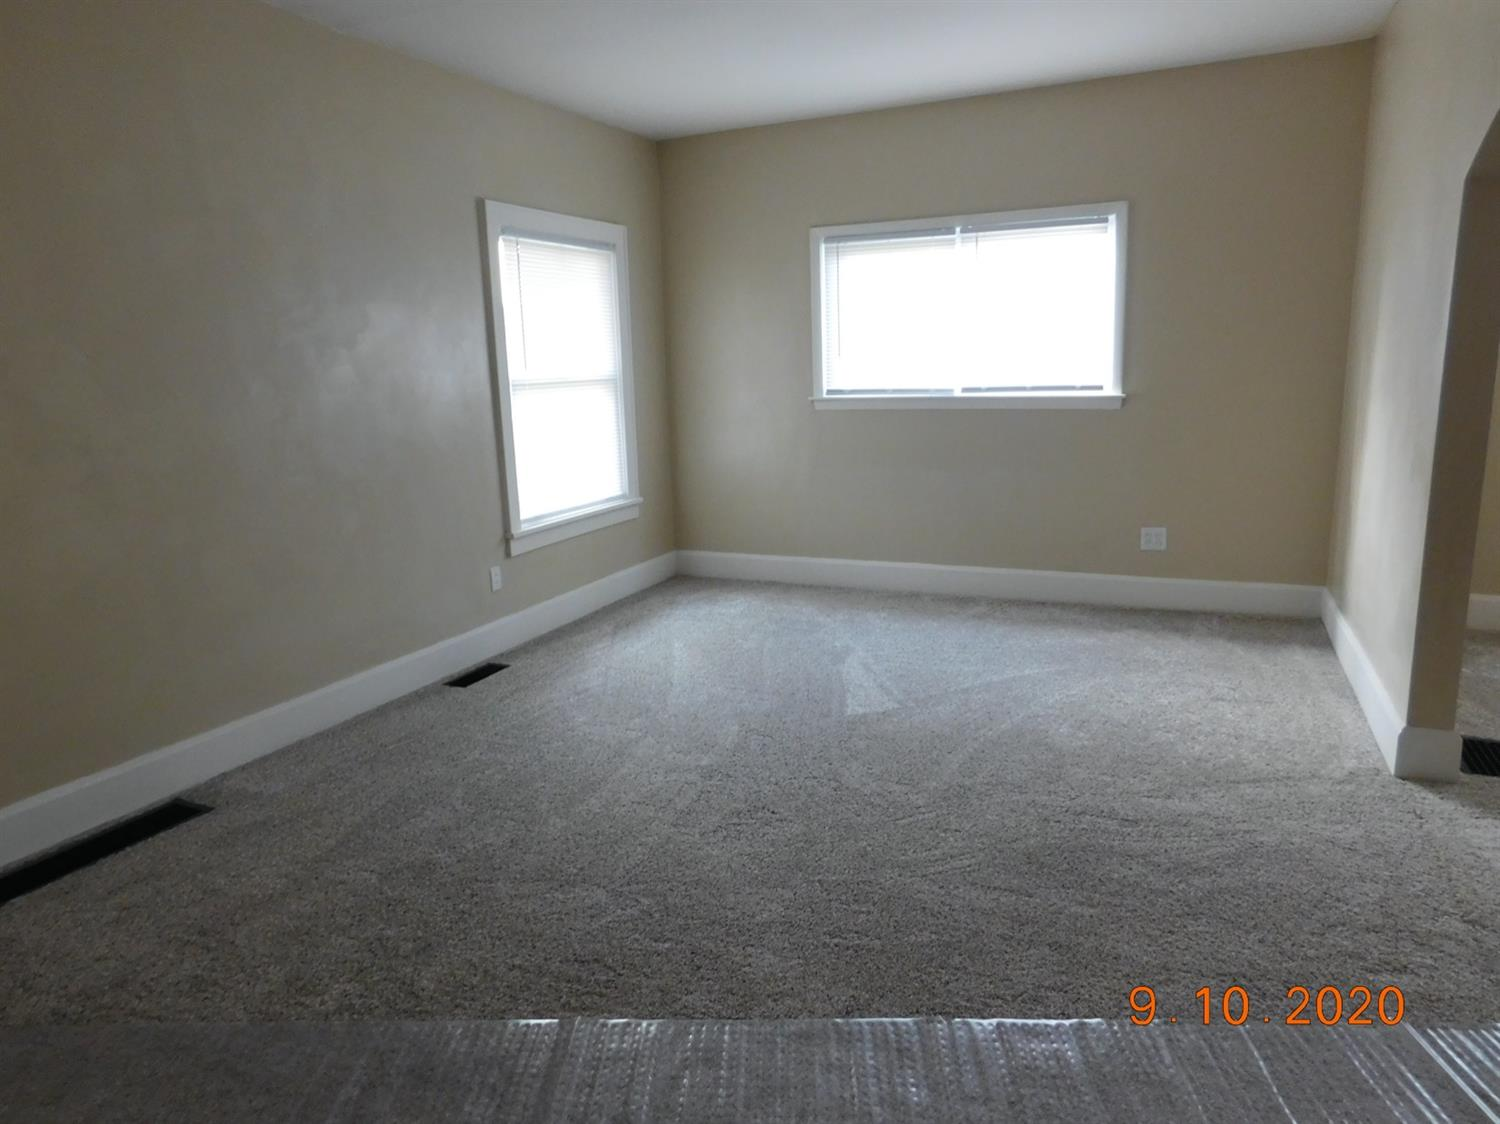 Photo 3 for 1405 Avalon Dr Middletown North, OH 45042